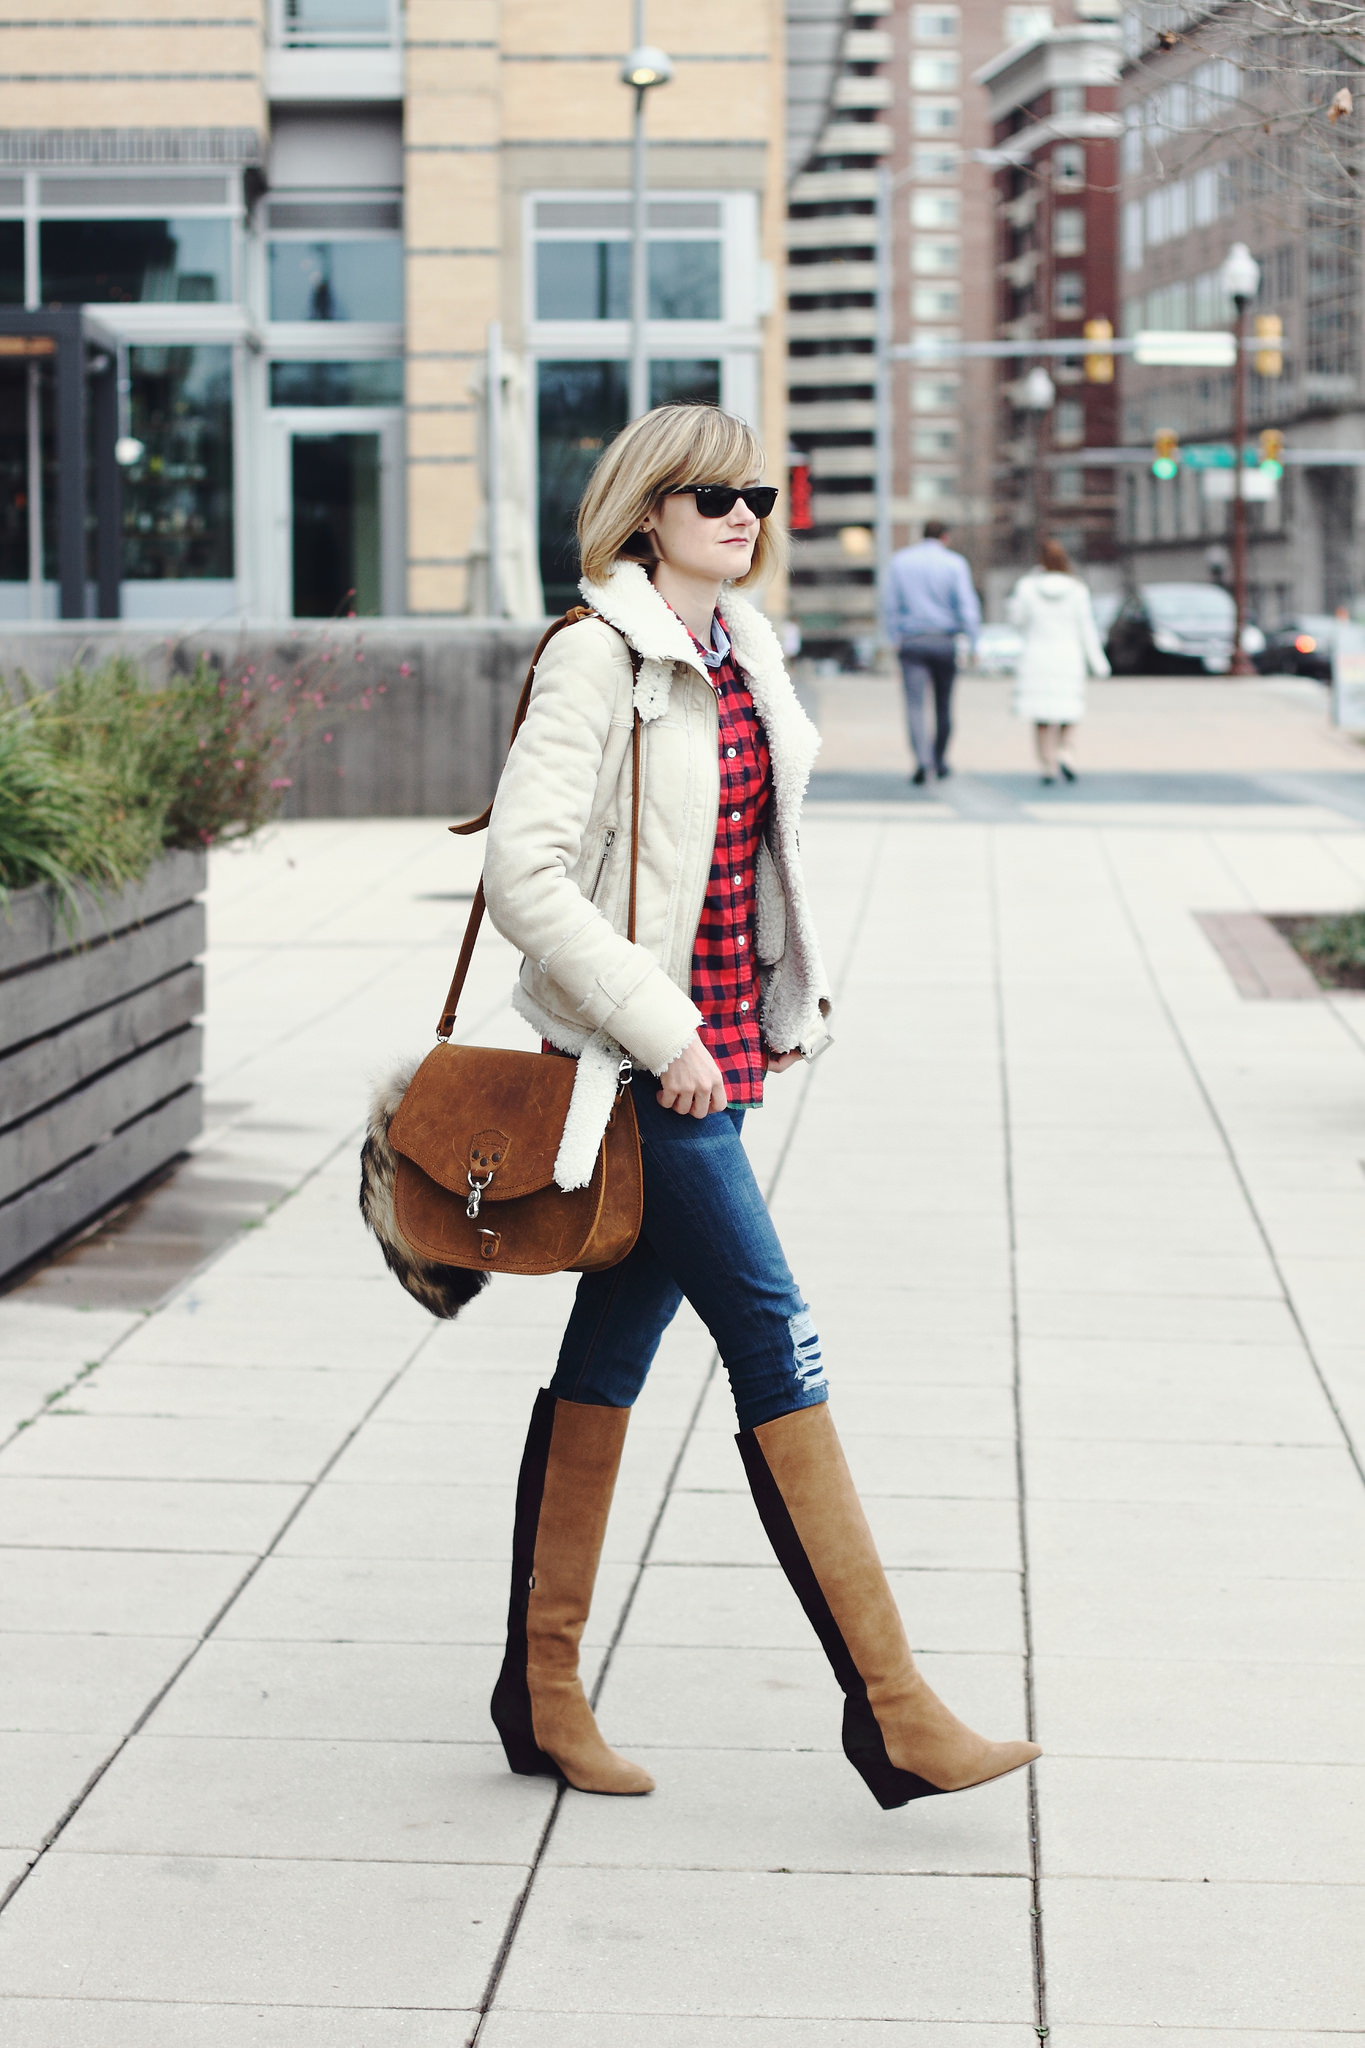 buffalo plaid shirt, Mango shearling jacket, and Saddleback leather bag